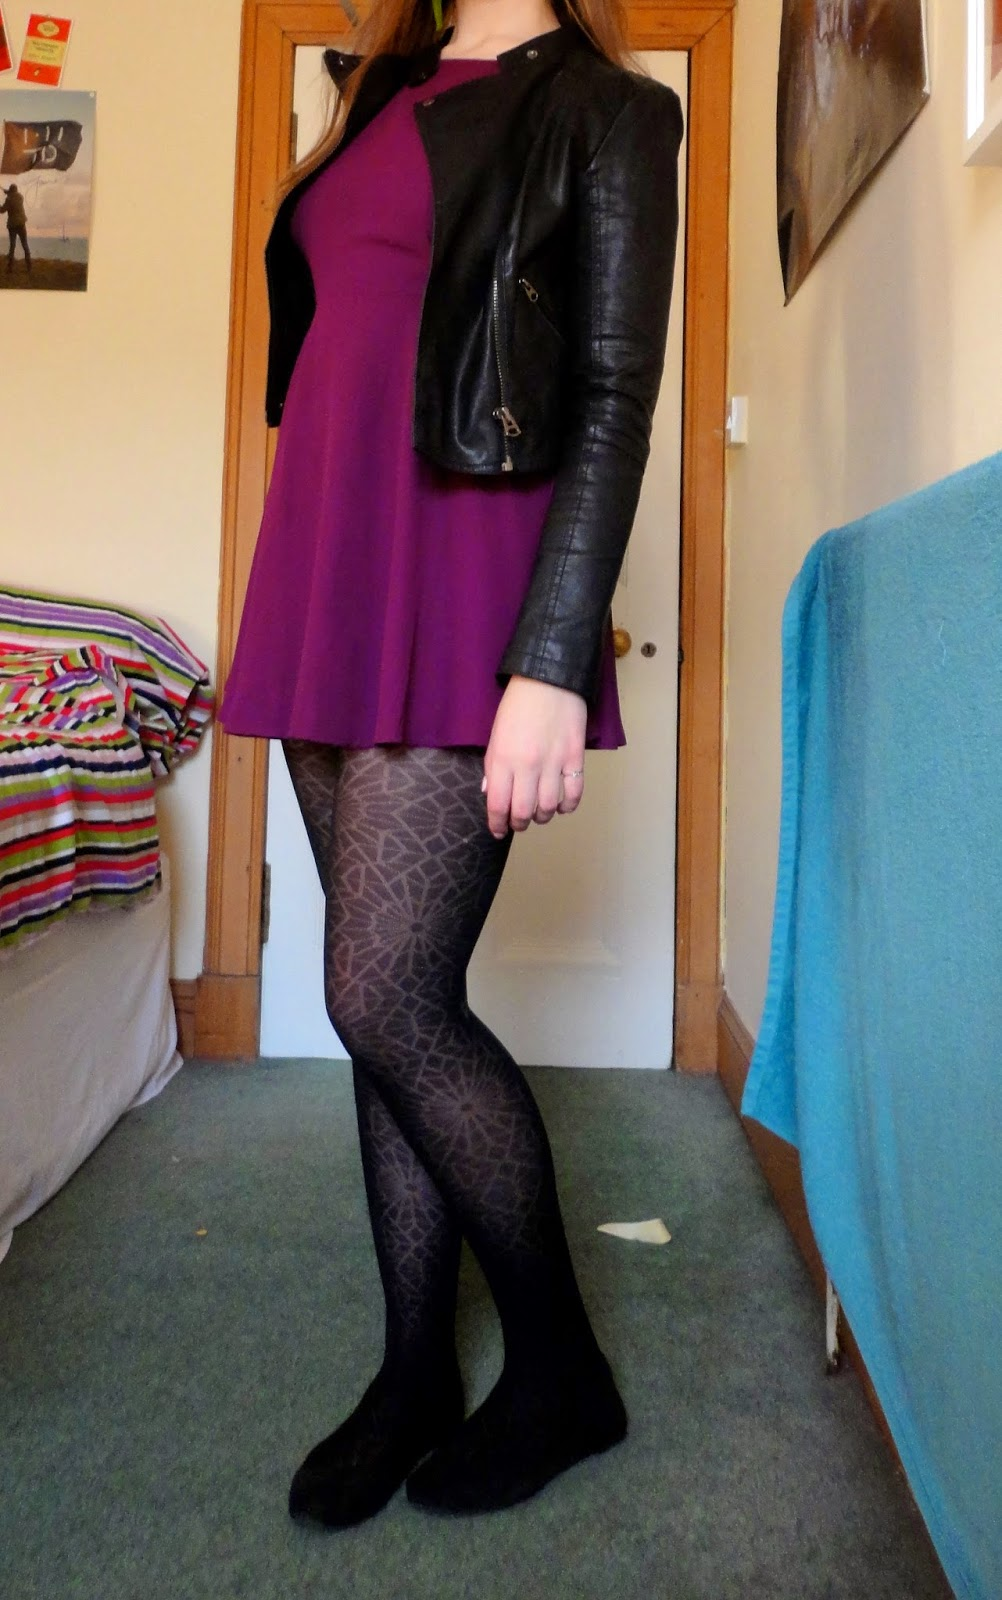 short purple dress with leather jacket, black flats and cobweb tights